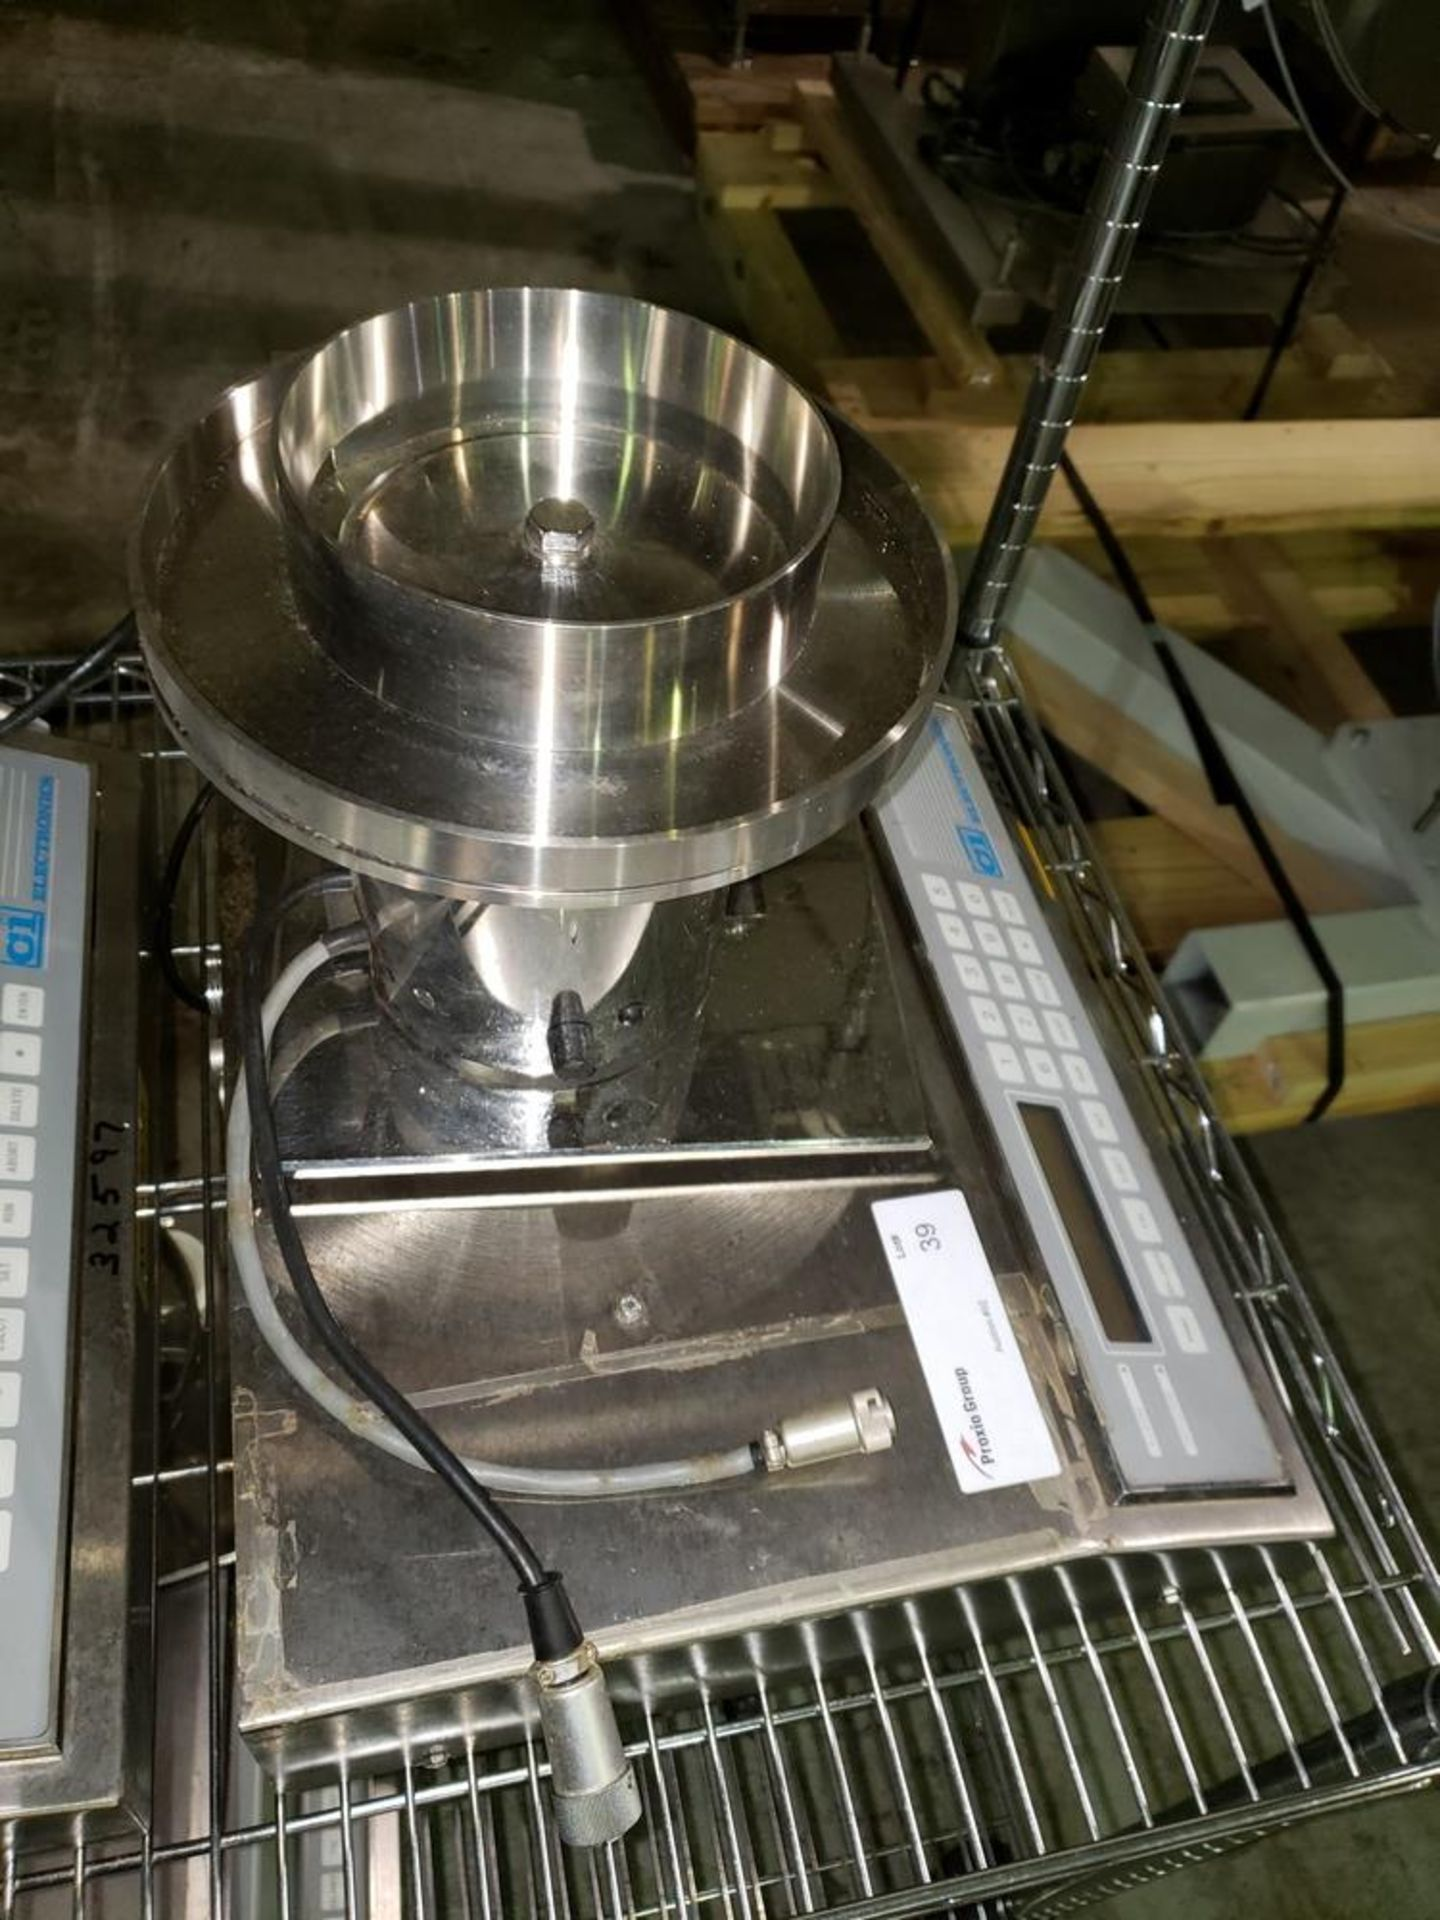 Lot 39 - CI Electronics tablet/capsule checkweigher, 115 volt, serial# TP-389.